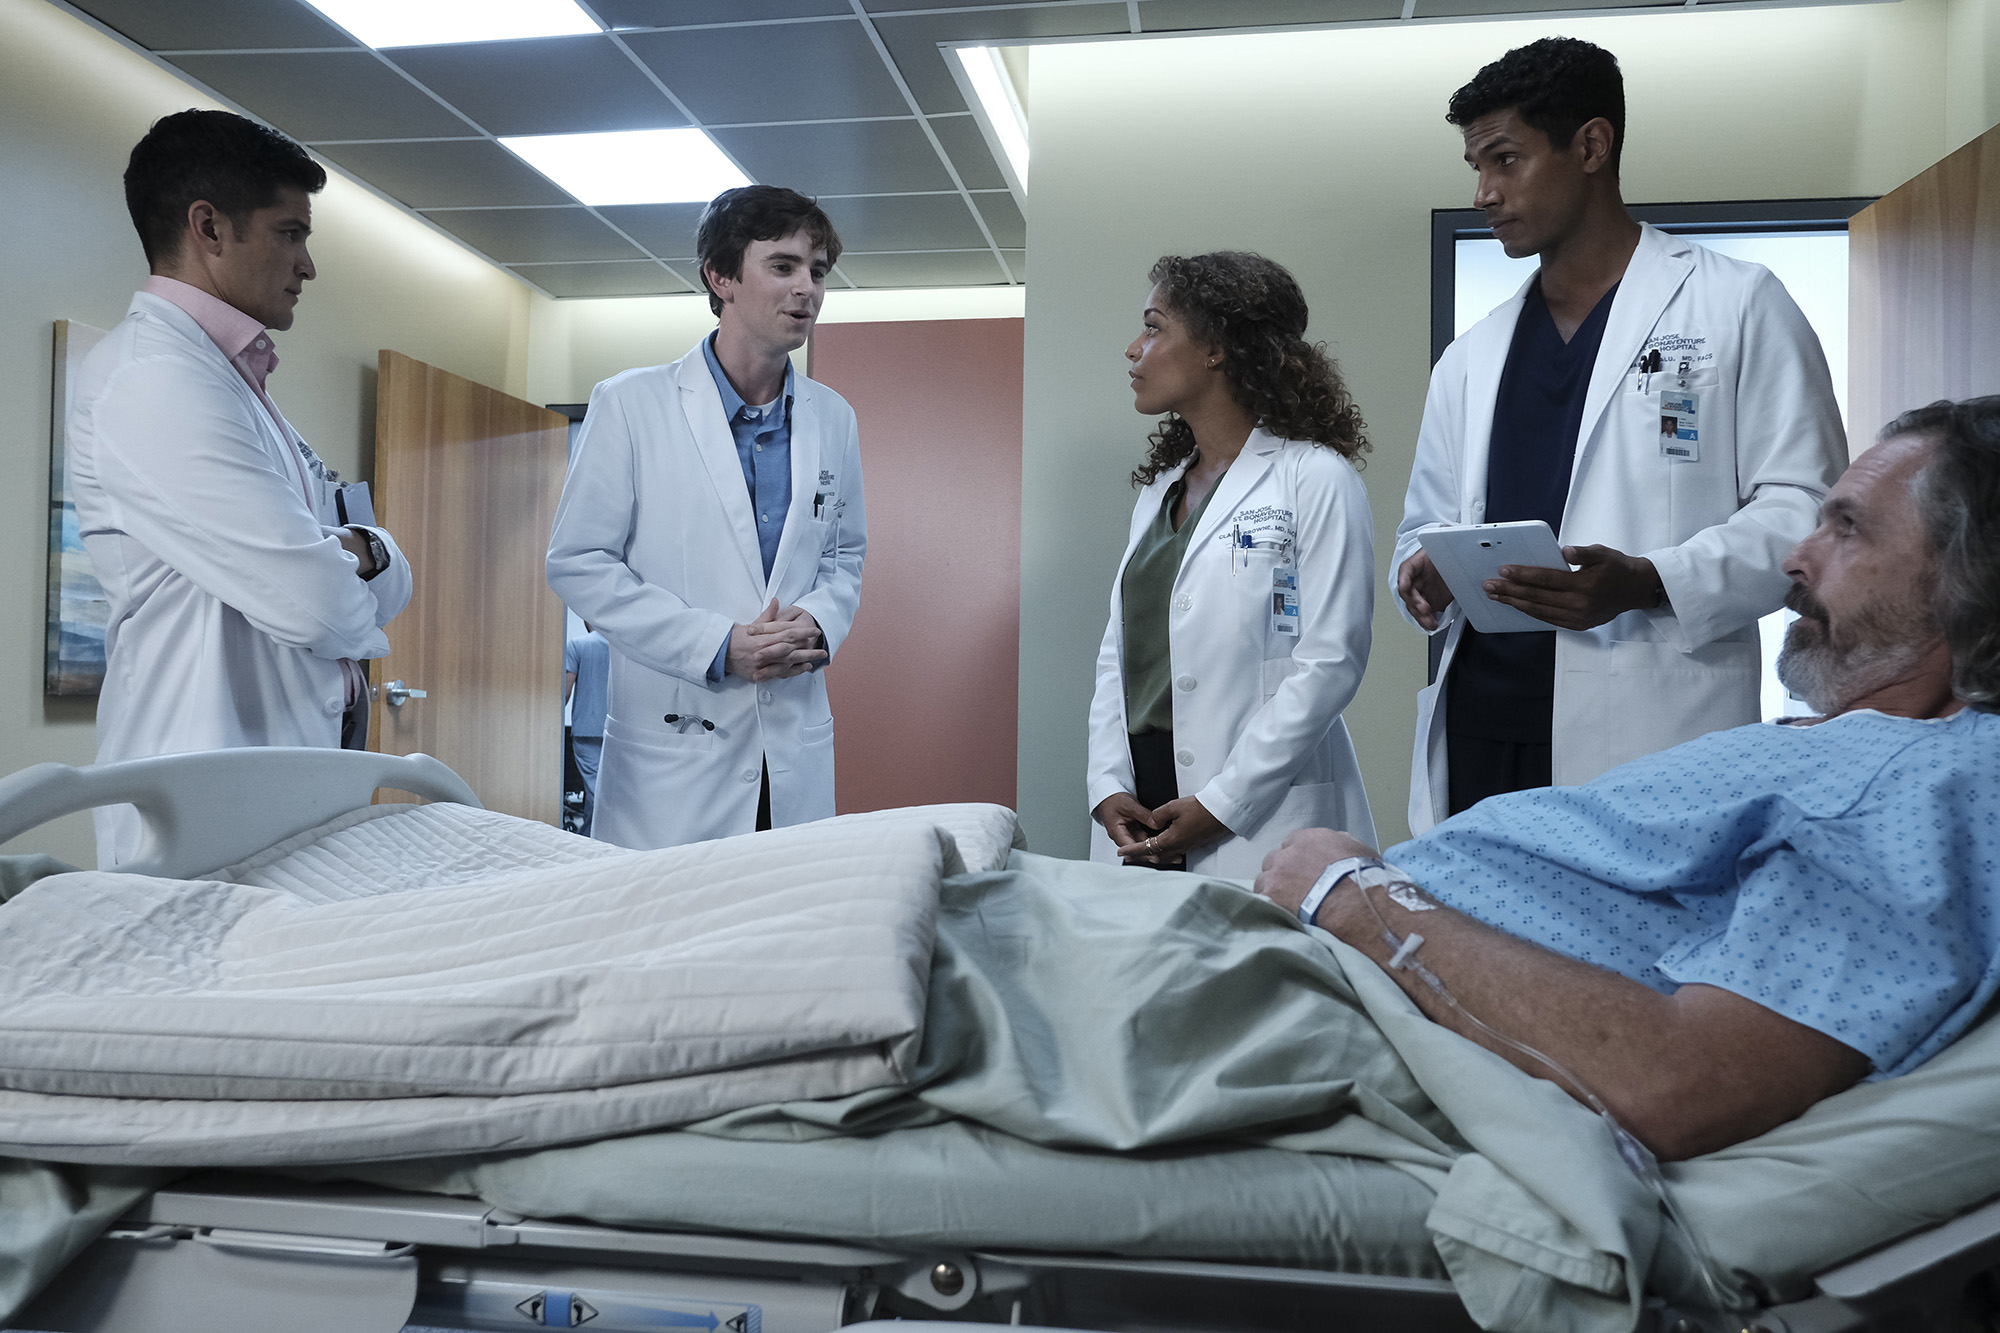 Watch The Good Doctor Episode 1 Online Free - No Sign In